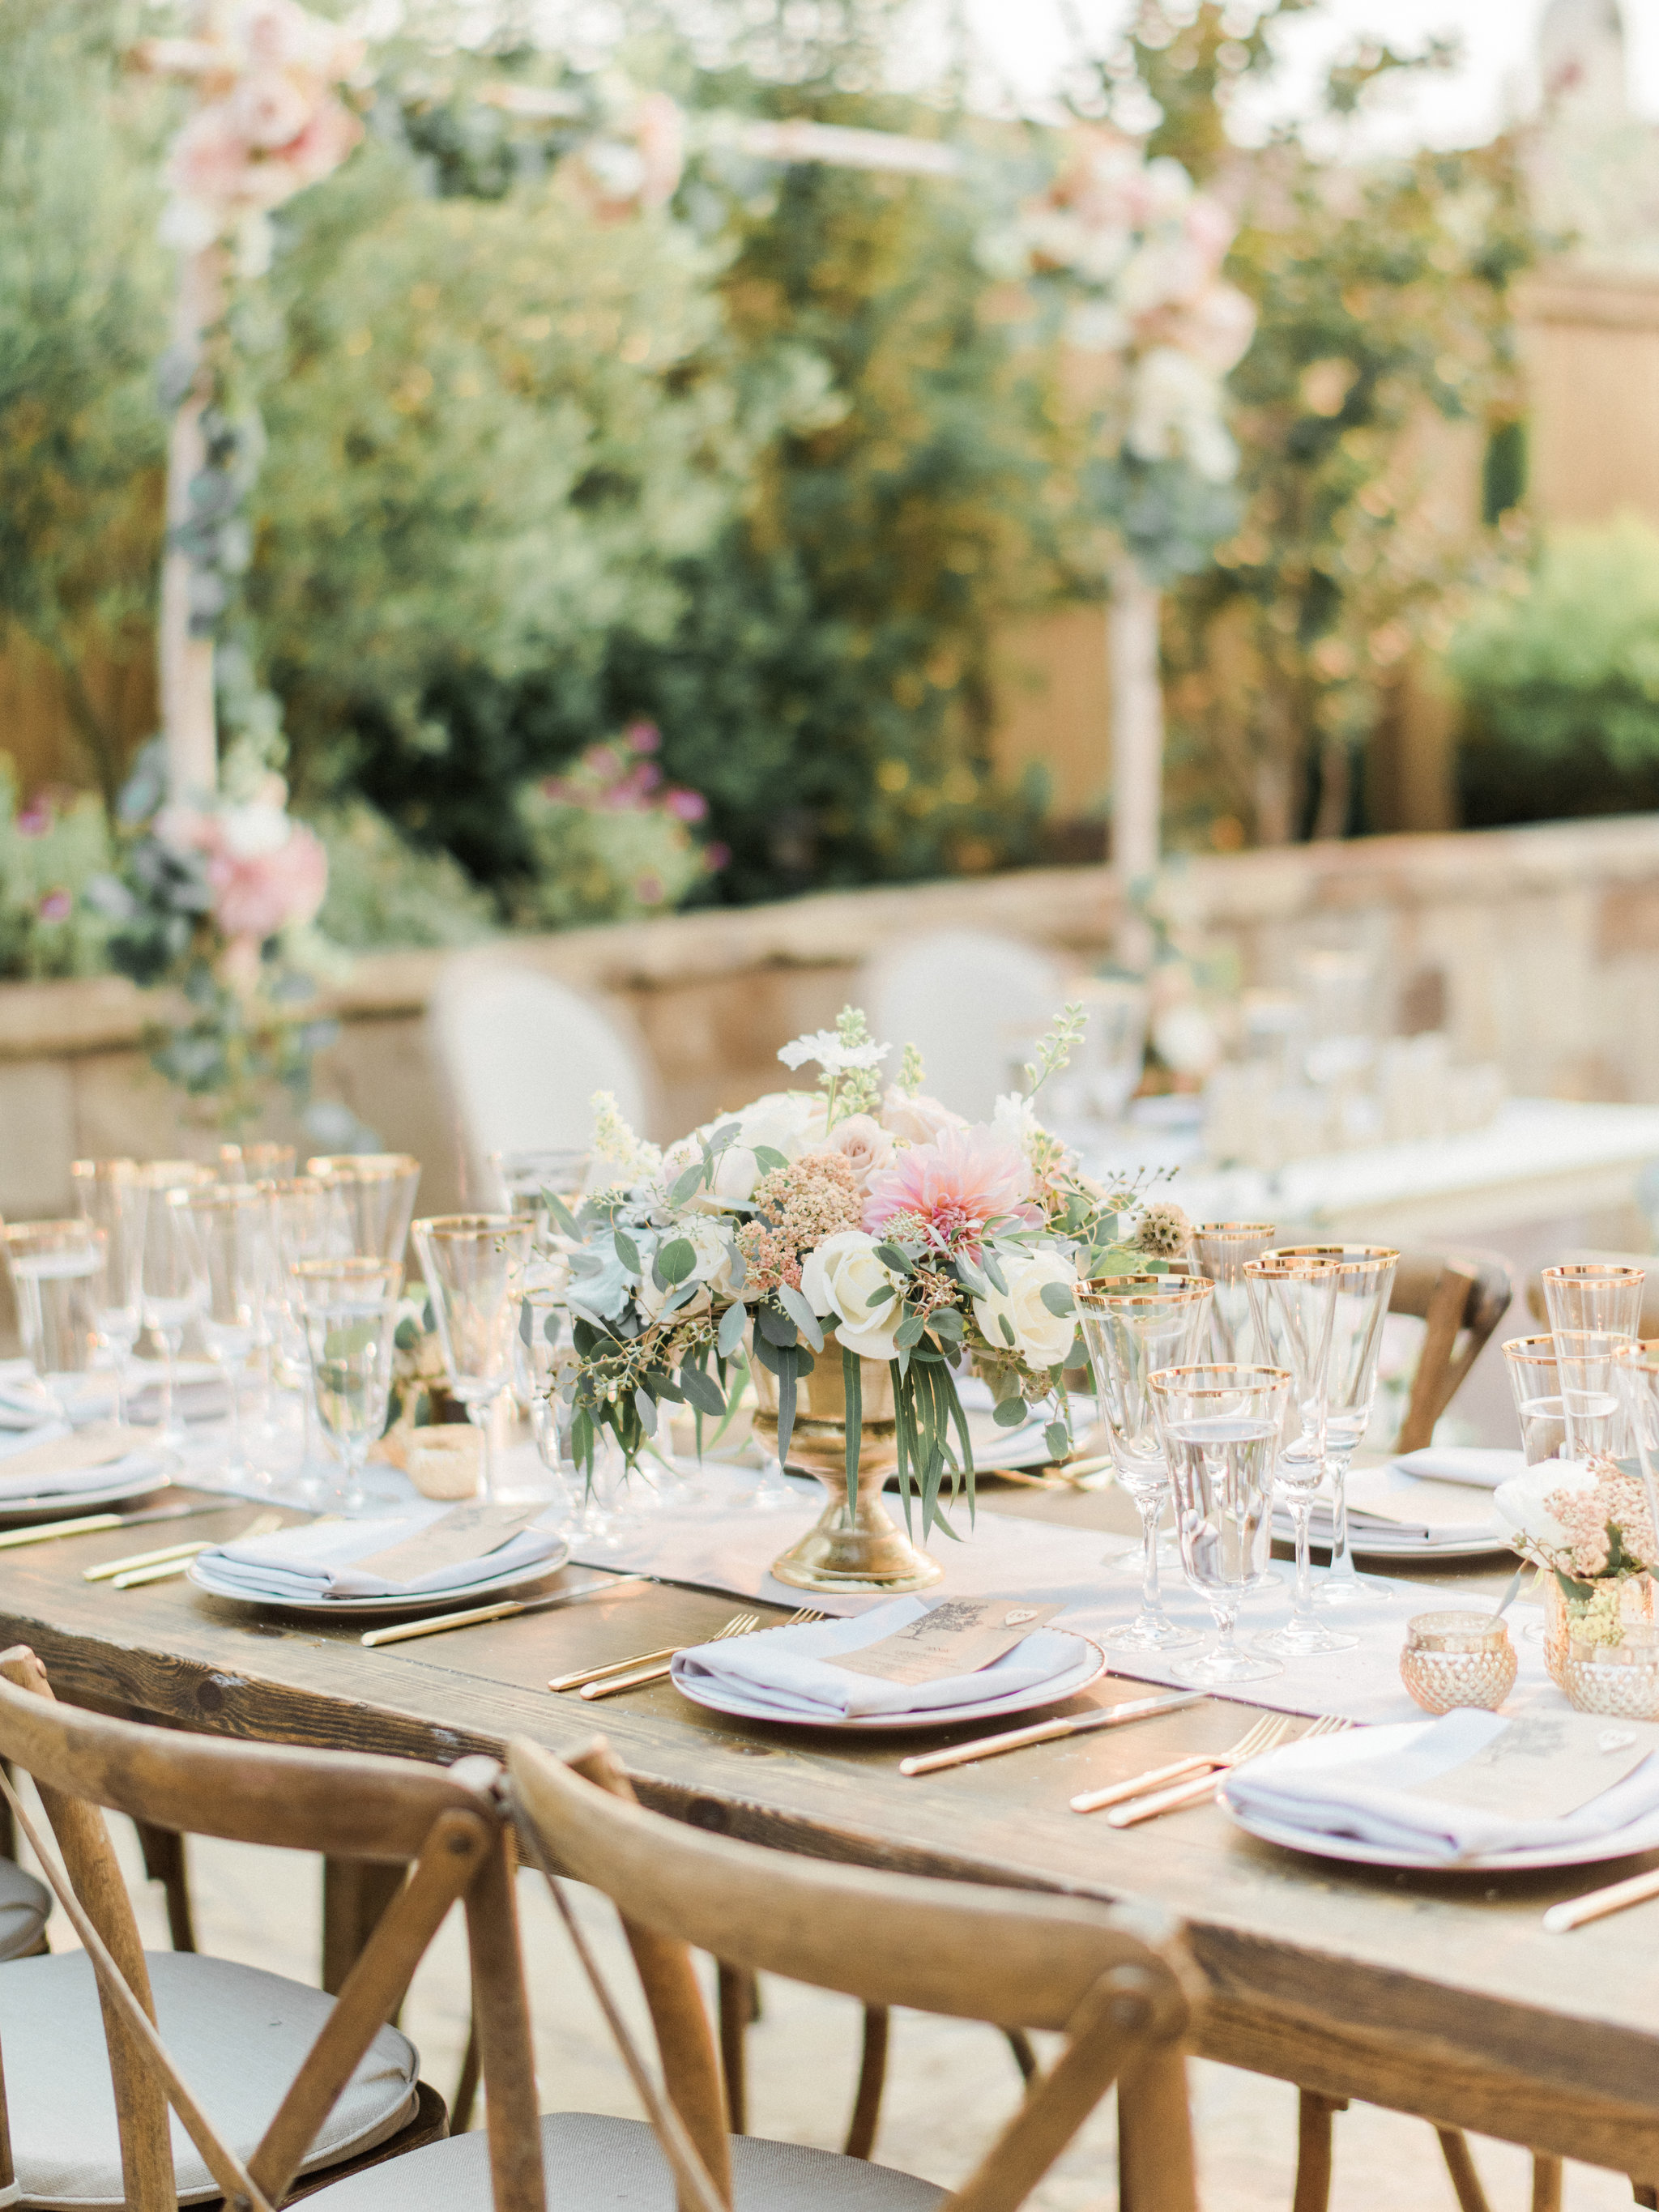 Private Estate Wedding Orcutt Wedding Planner Amanda Holder Events - Field to table catering